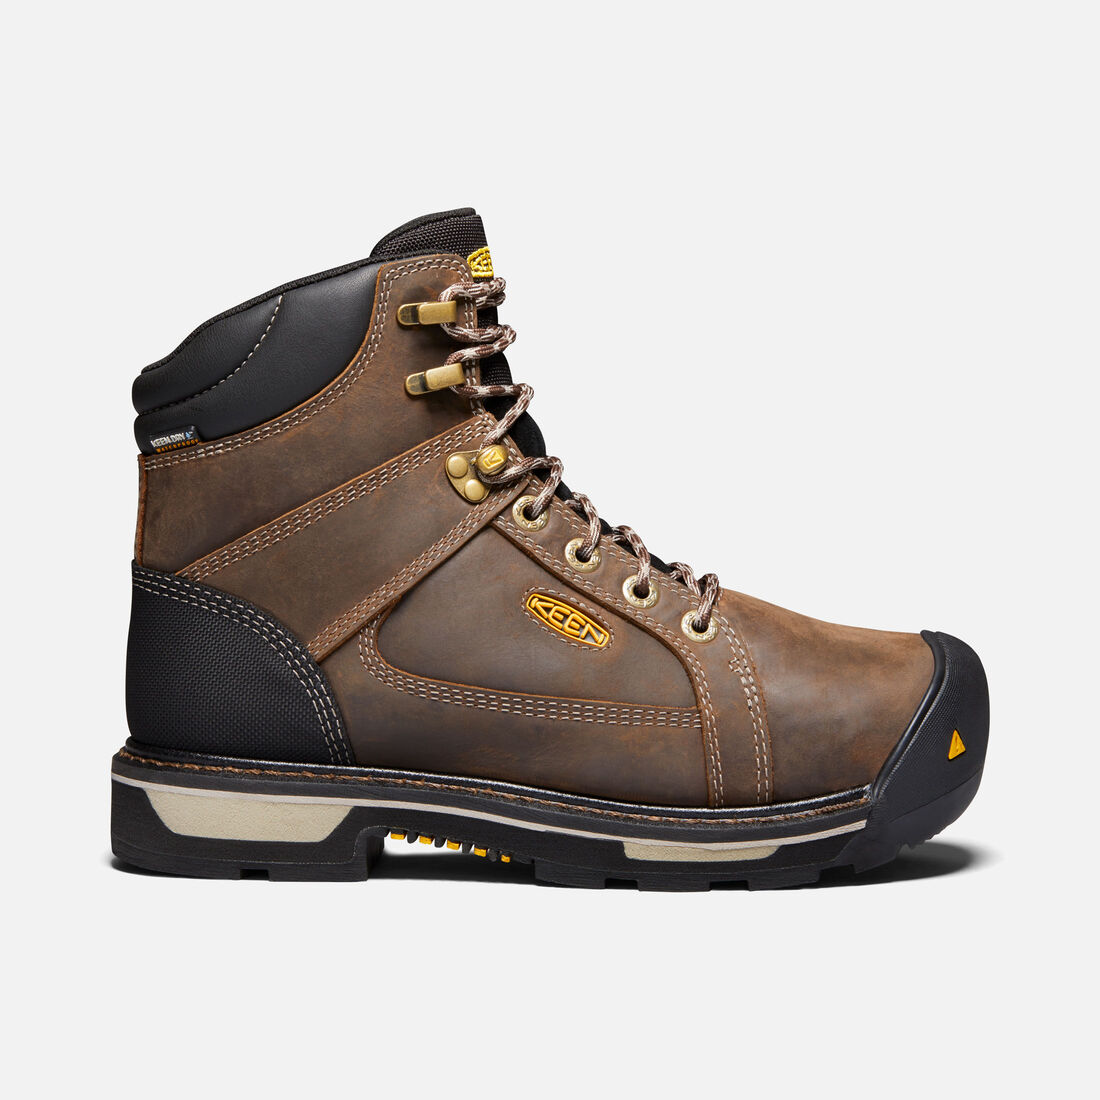 e7abc4a83e1 Men's Oakland Steel Toe Waterproof Work Boots | KEEN Footwear